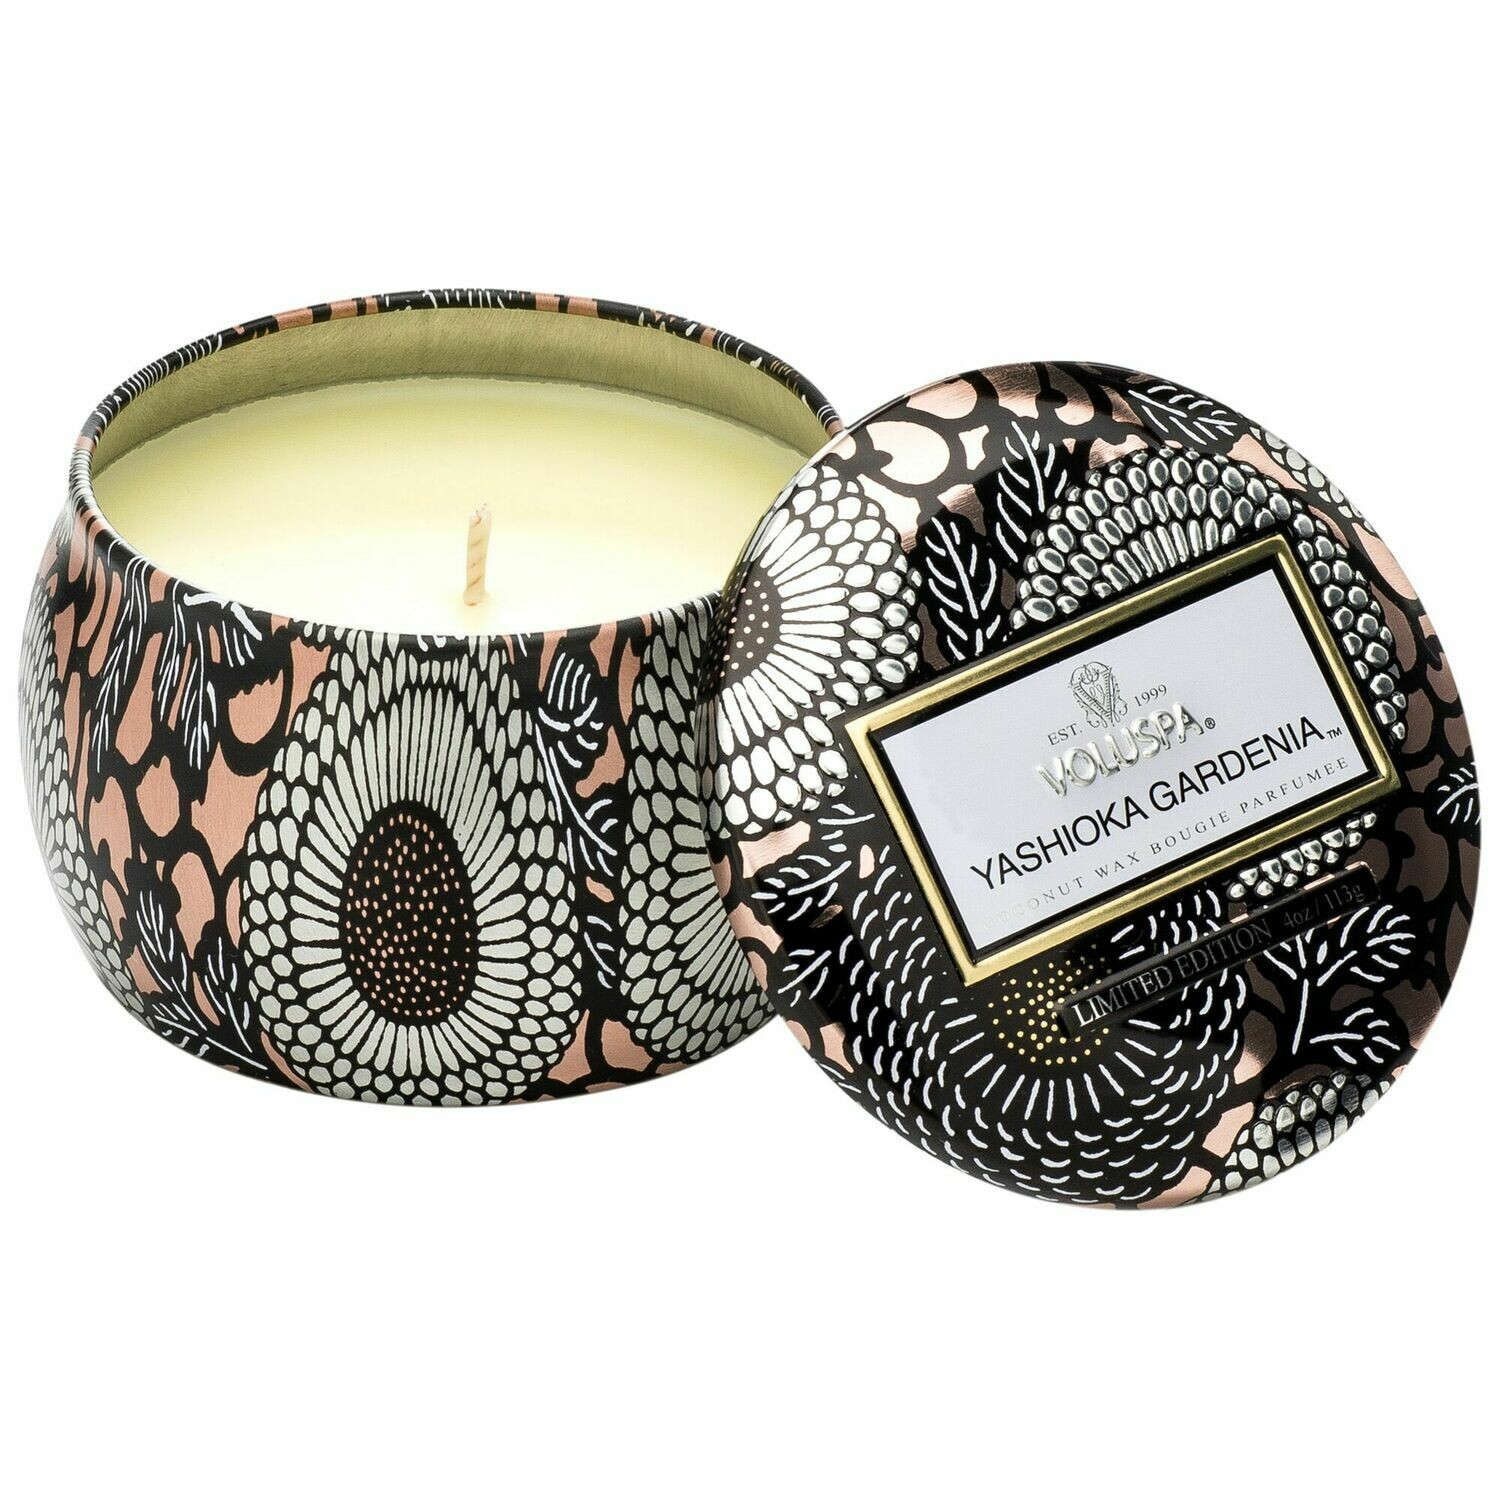 Yashioka Gardenia Candle - Voluspa Petite Tin Candle